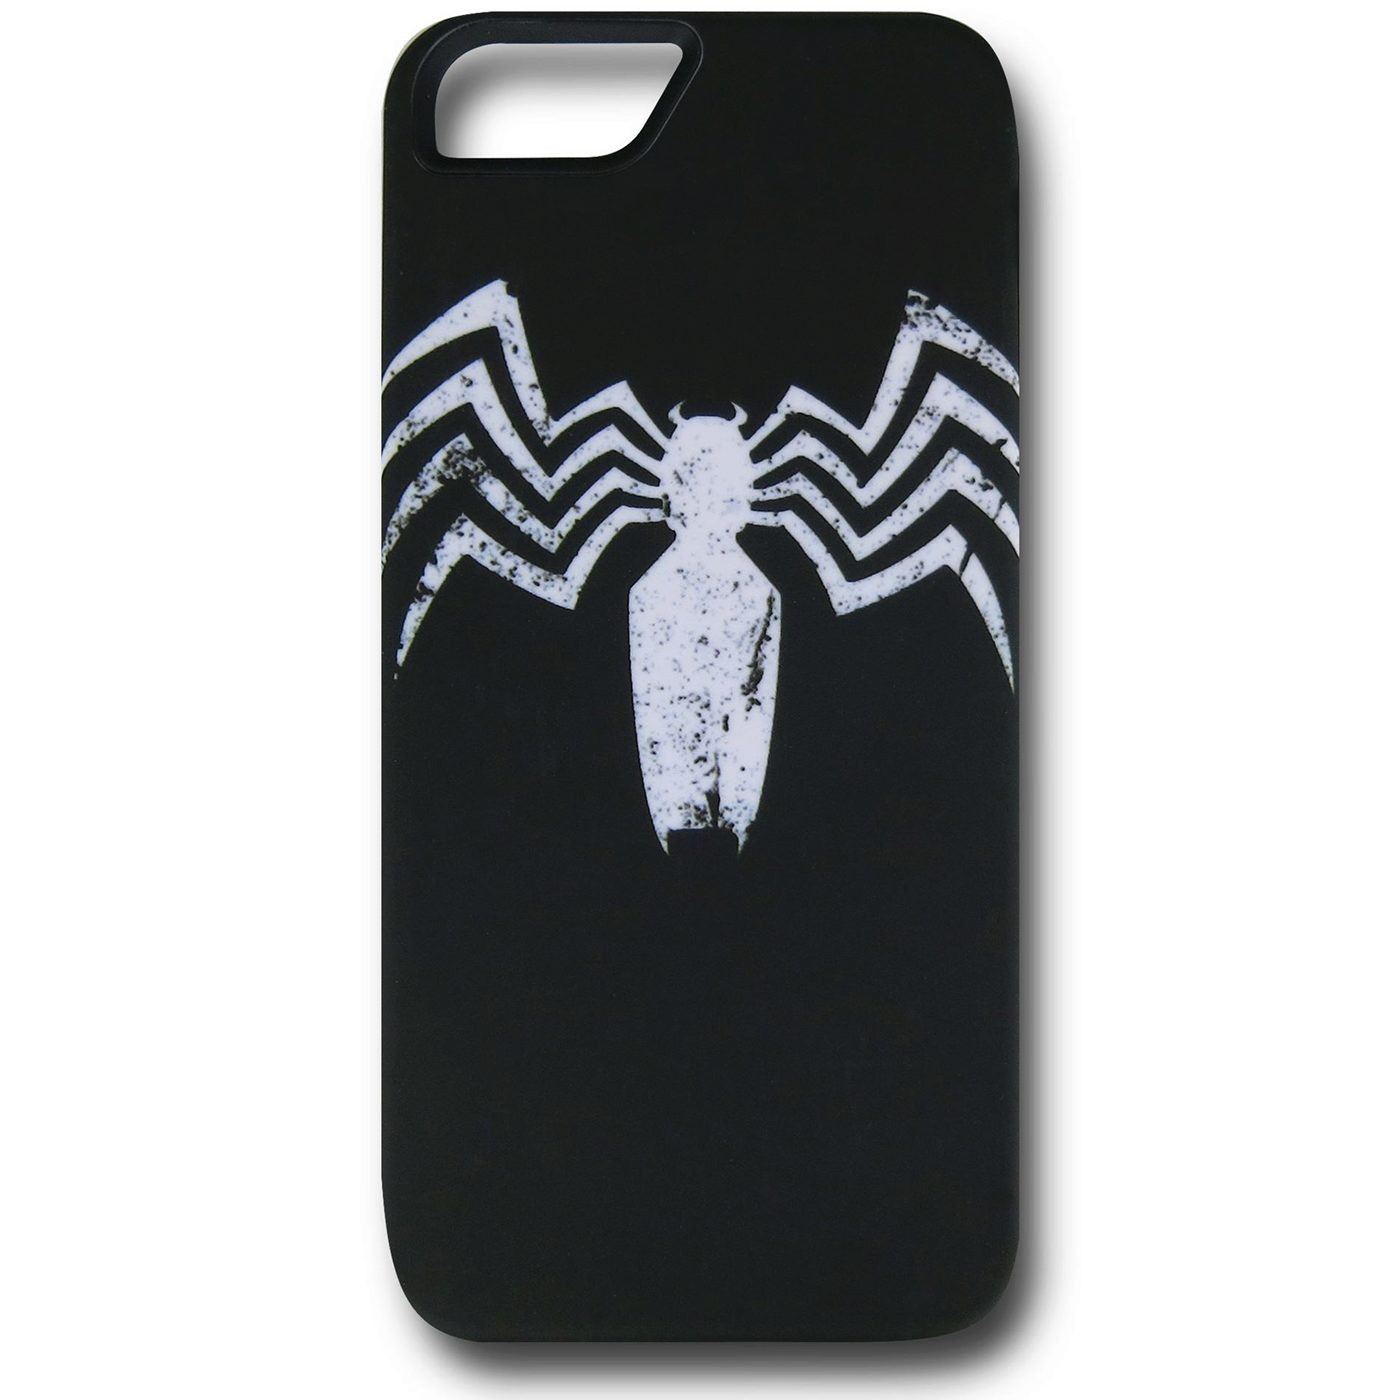 Venom Distressed Symbol iPhone 5 Case